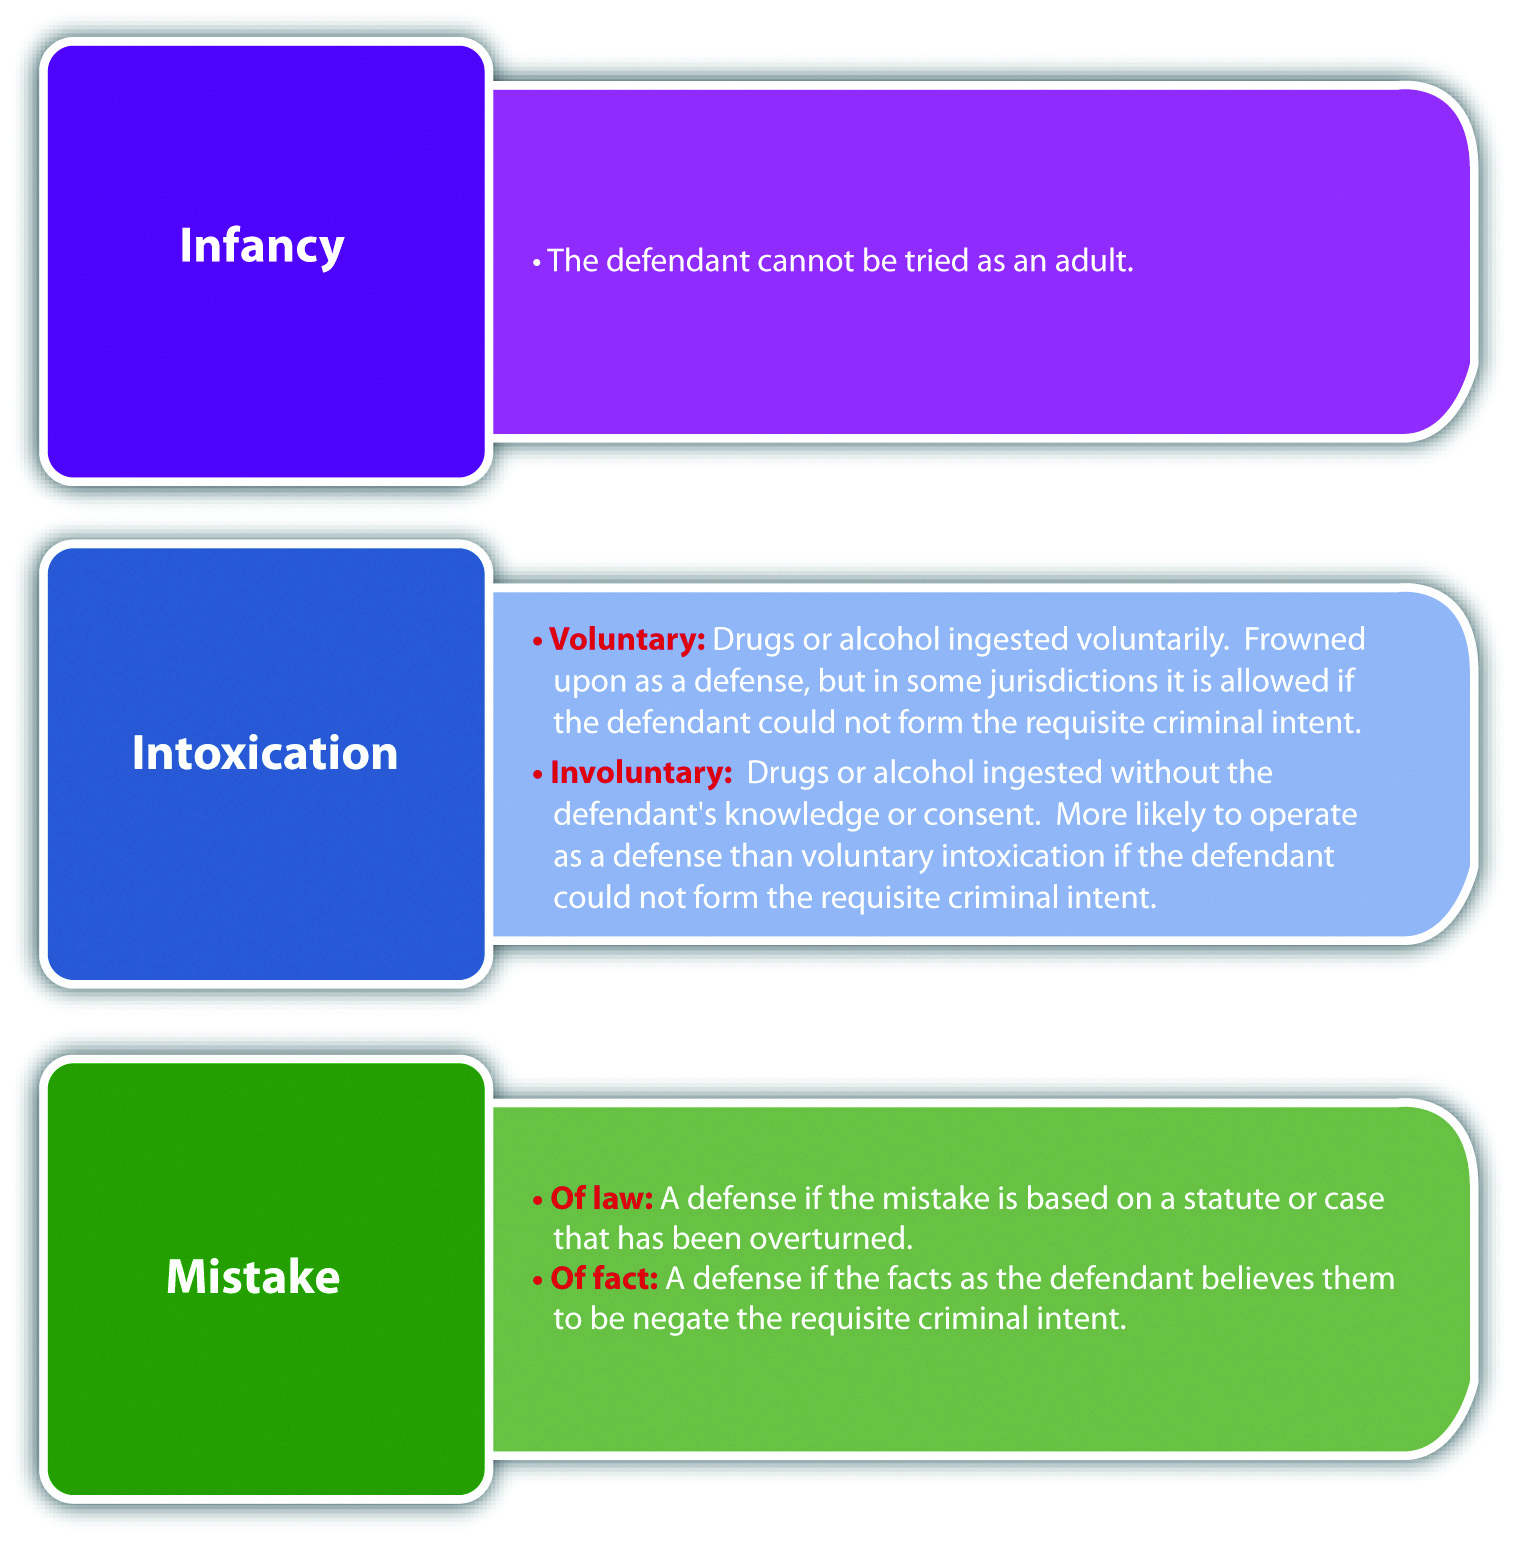 Diagram comparing the consequences of infancy, intoxication, and mistakes.